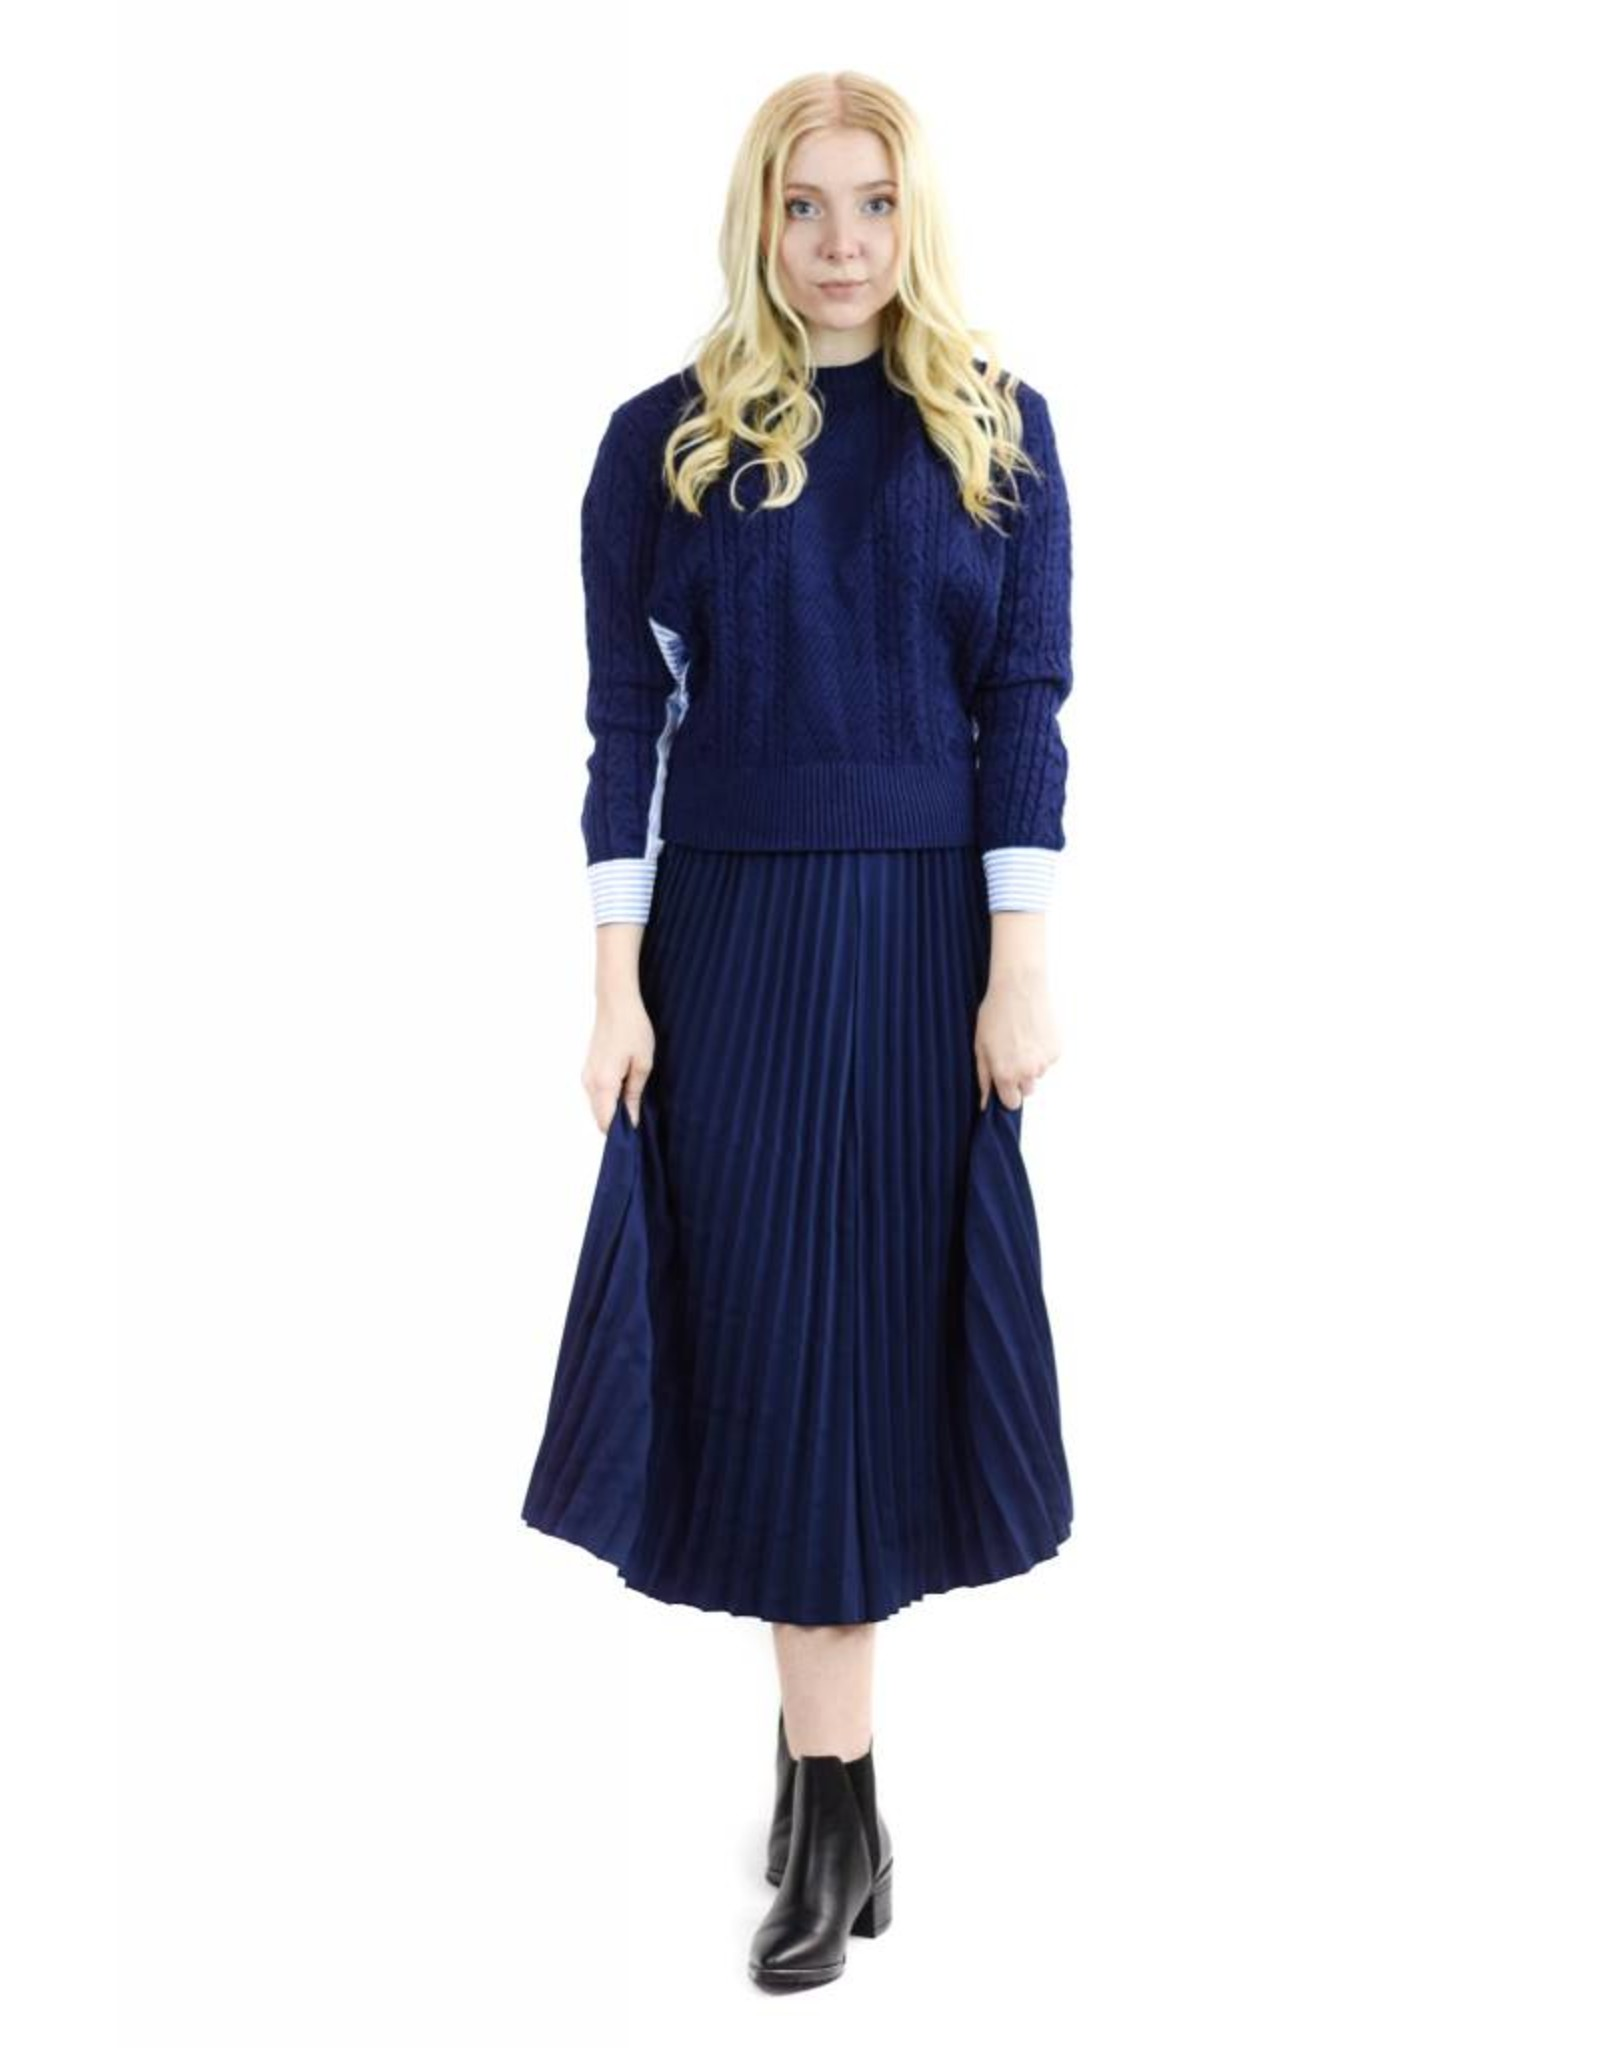 Purity Sweater and Skirt